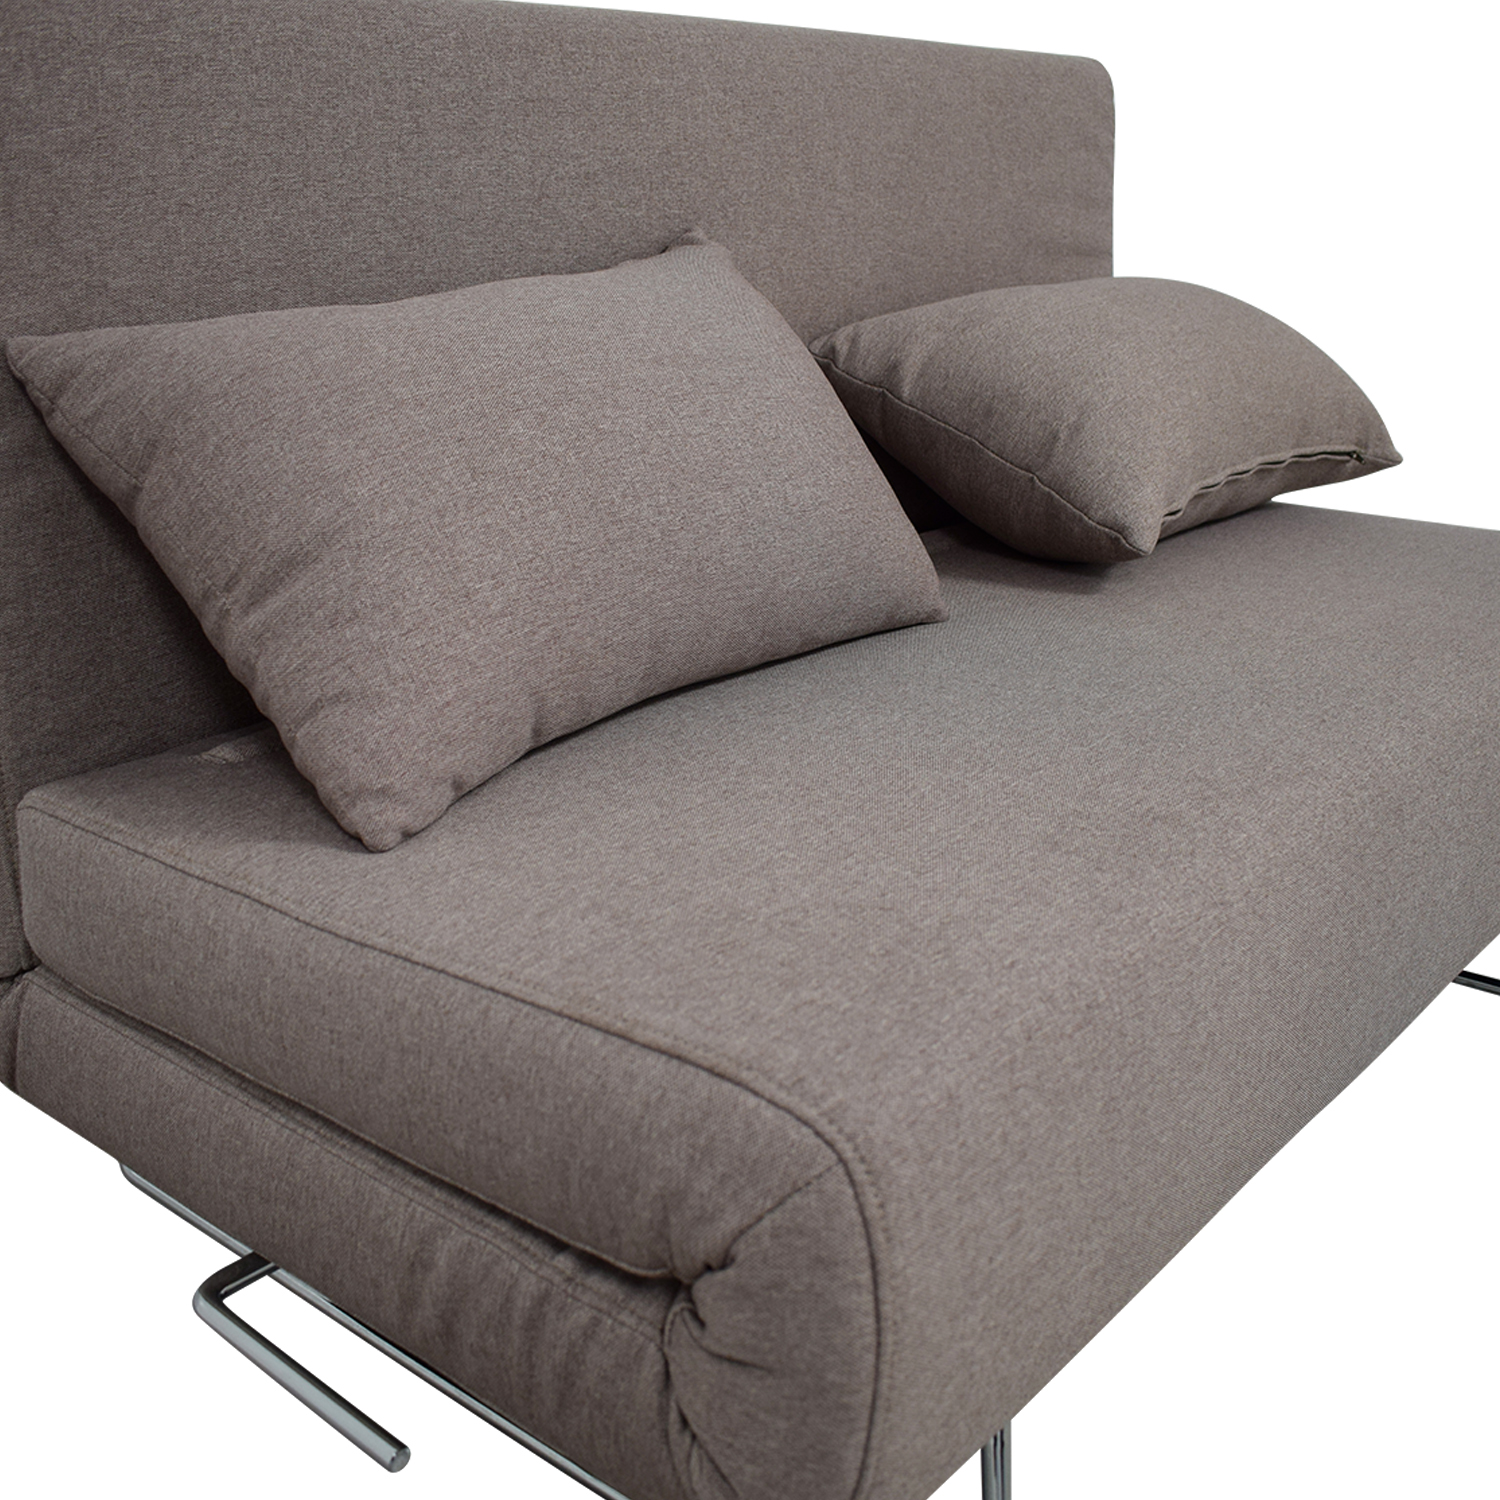 All Modern All Modern Gray Convertible Futon used